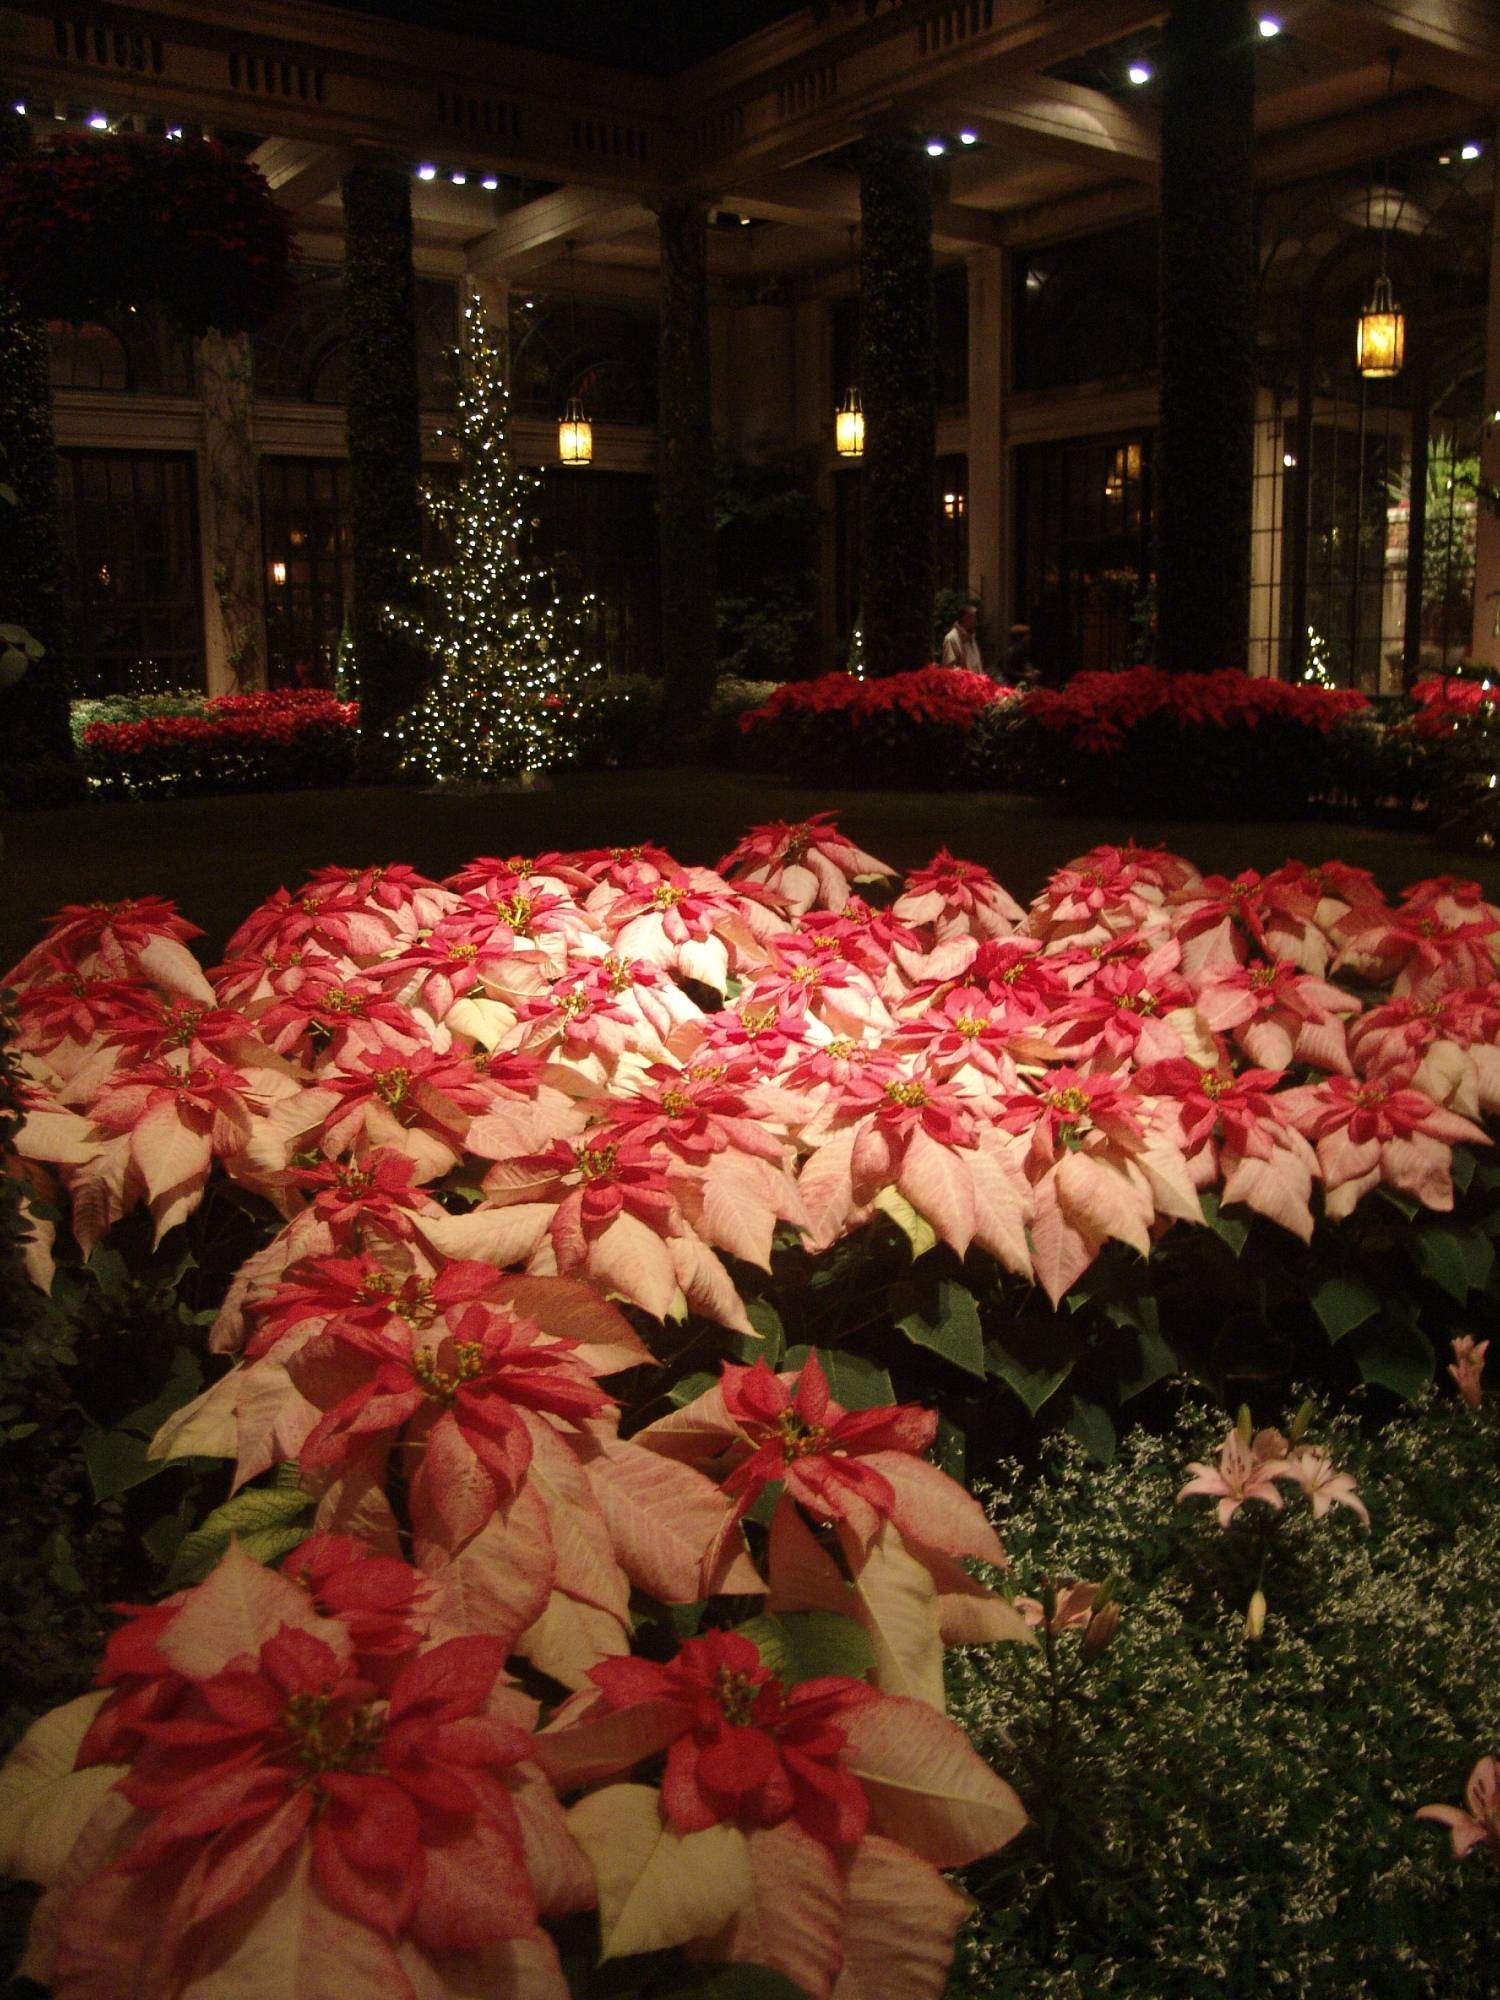 Enjoy the holiday spectacle at Longwood Gardens | PassPorter.com